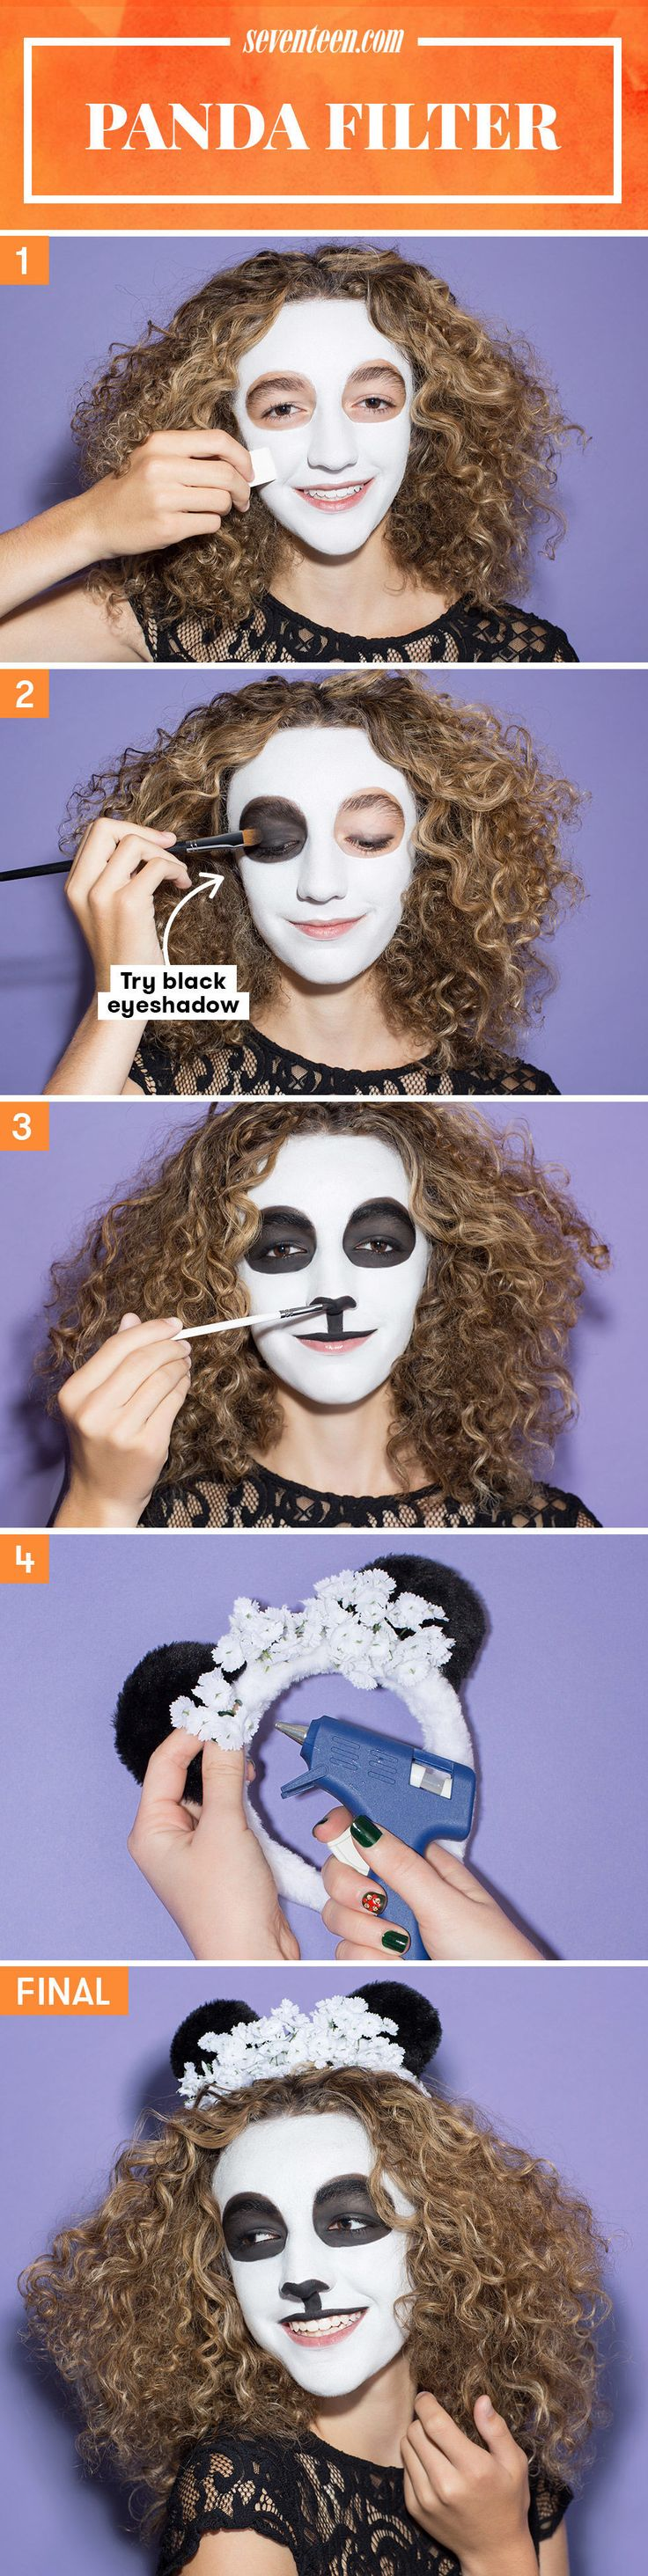 5 Snapchat Filter Halloween Costumes You Should Rock IRL